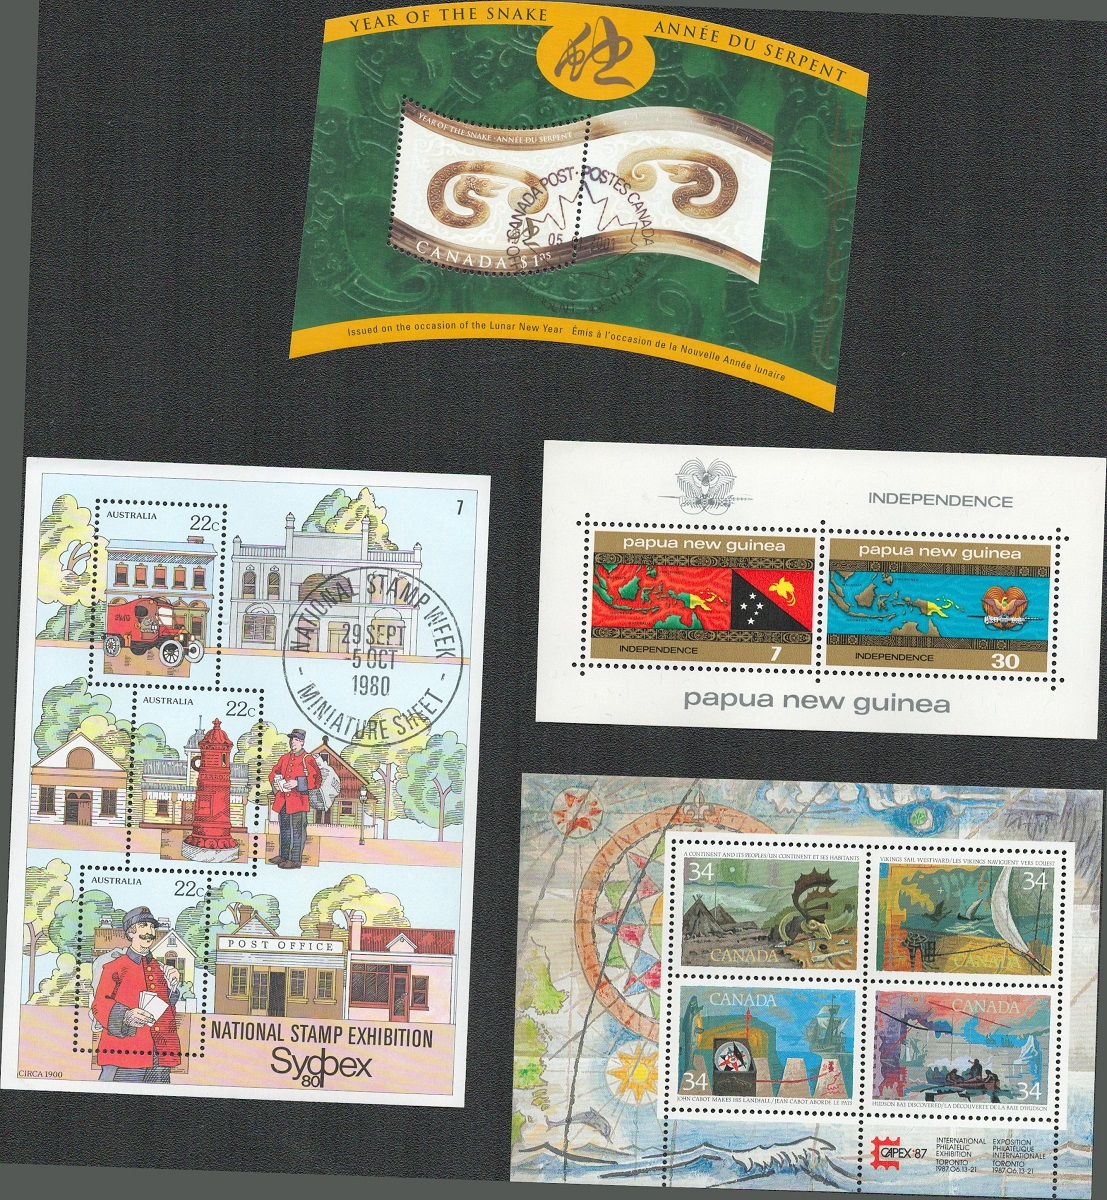 4 miniature sheets/ sheets of stamps. Some used. Includes Canada, Australia, Papua New Guinea.